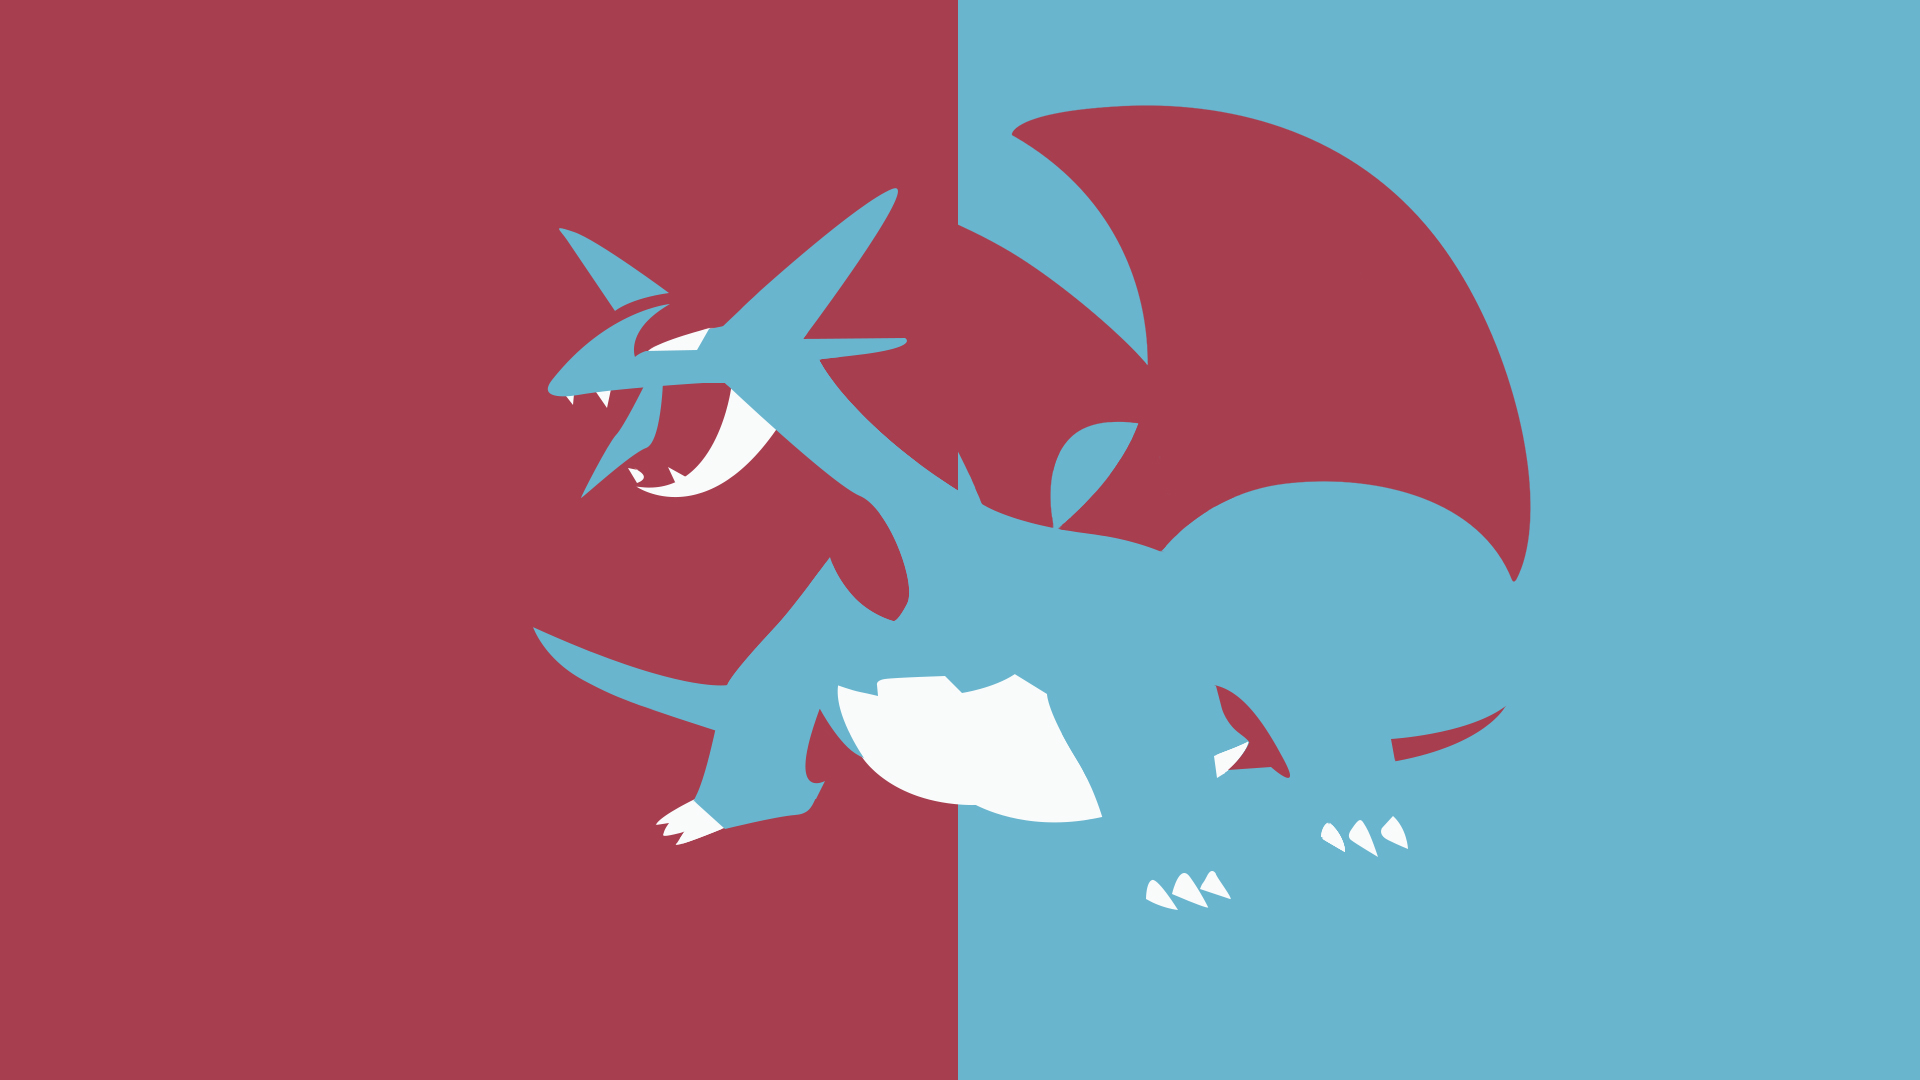 Modern background image of Salamence 1920x1080 More in comments 1920x1080